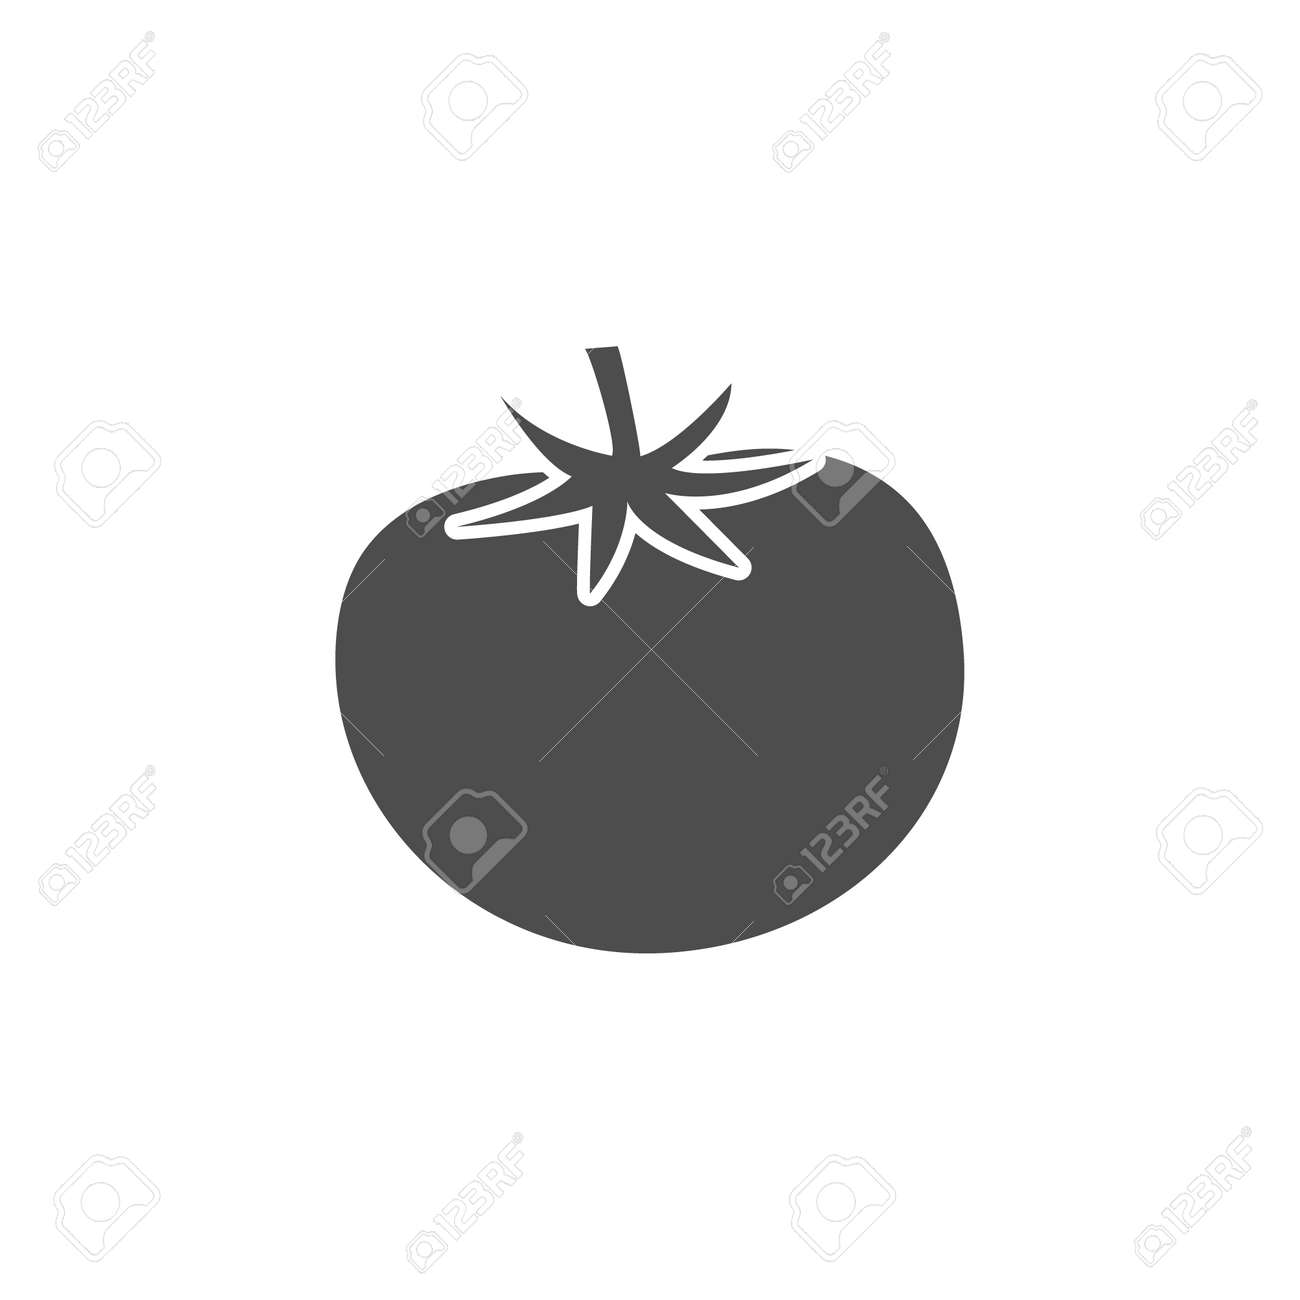 Tomato black icon. Healthy tasty food vegetable symbol. Tomato outline vector isolated on white. - 159629779